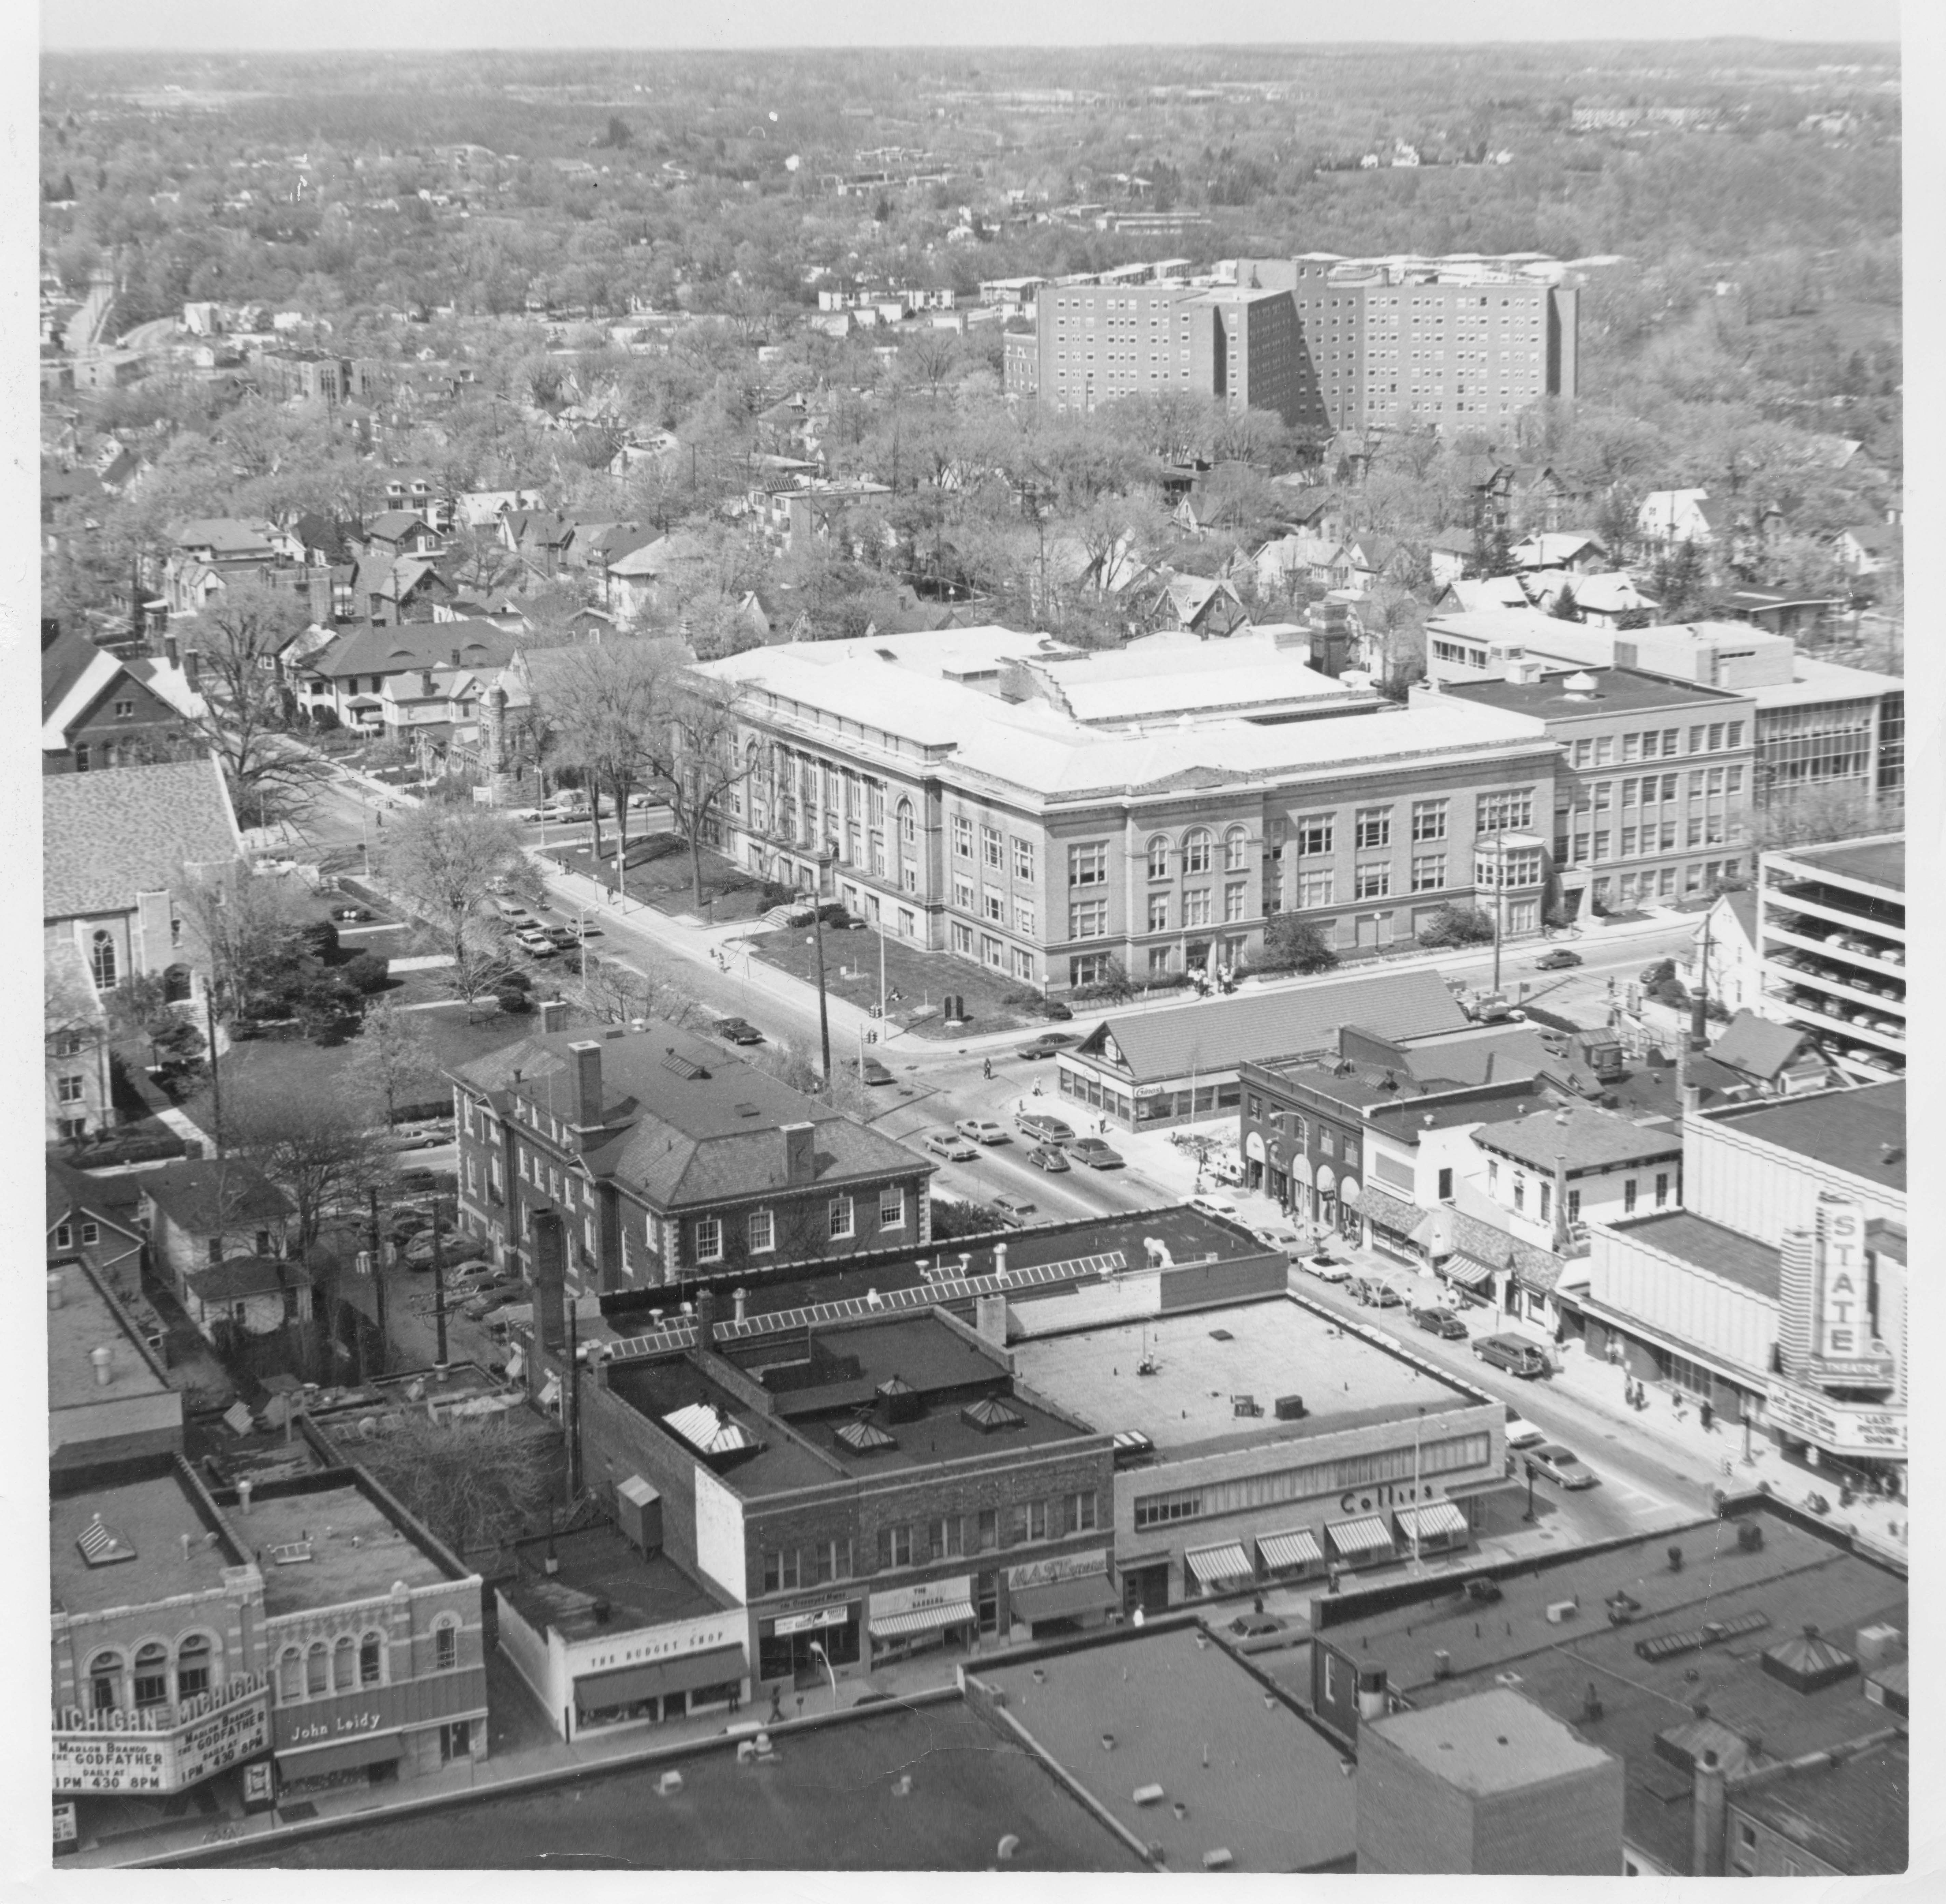 Aerial of Ann Arbor High School building (later UM Frieze Building) built in 1907 image